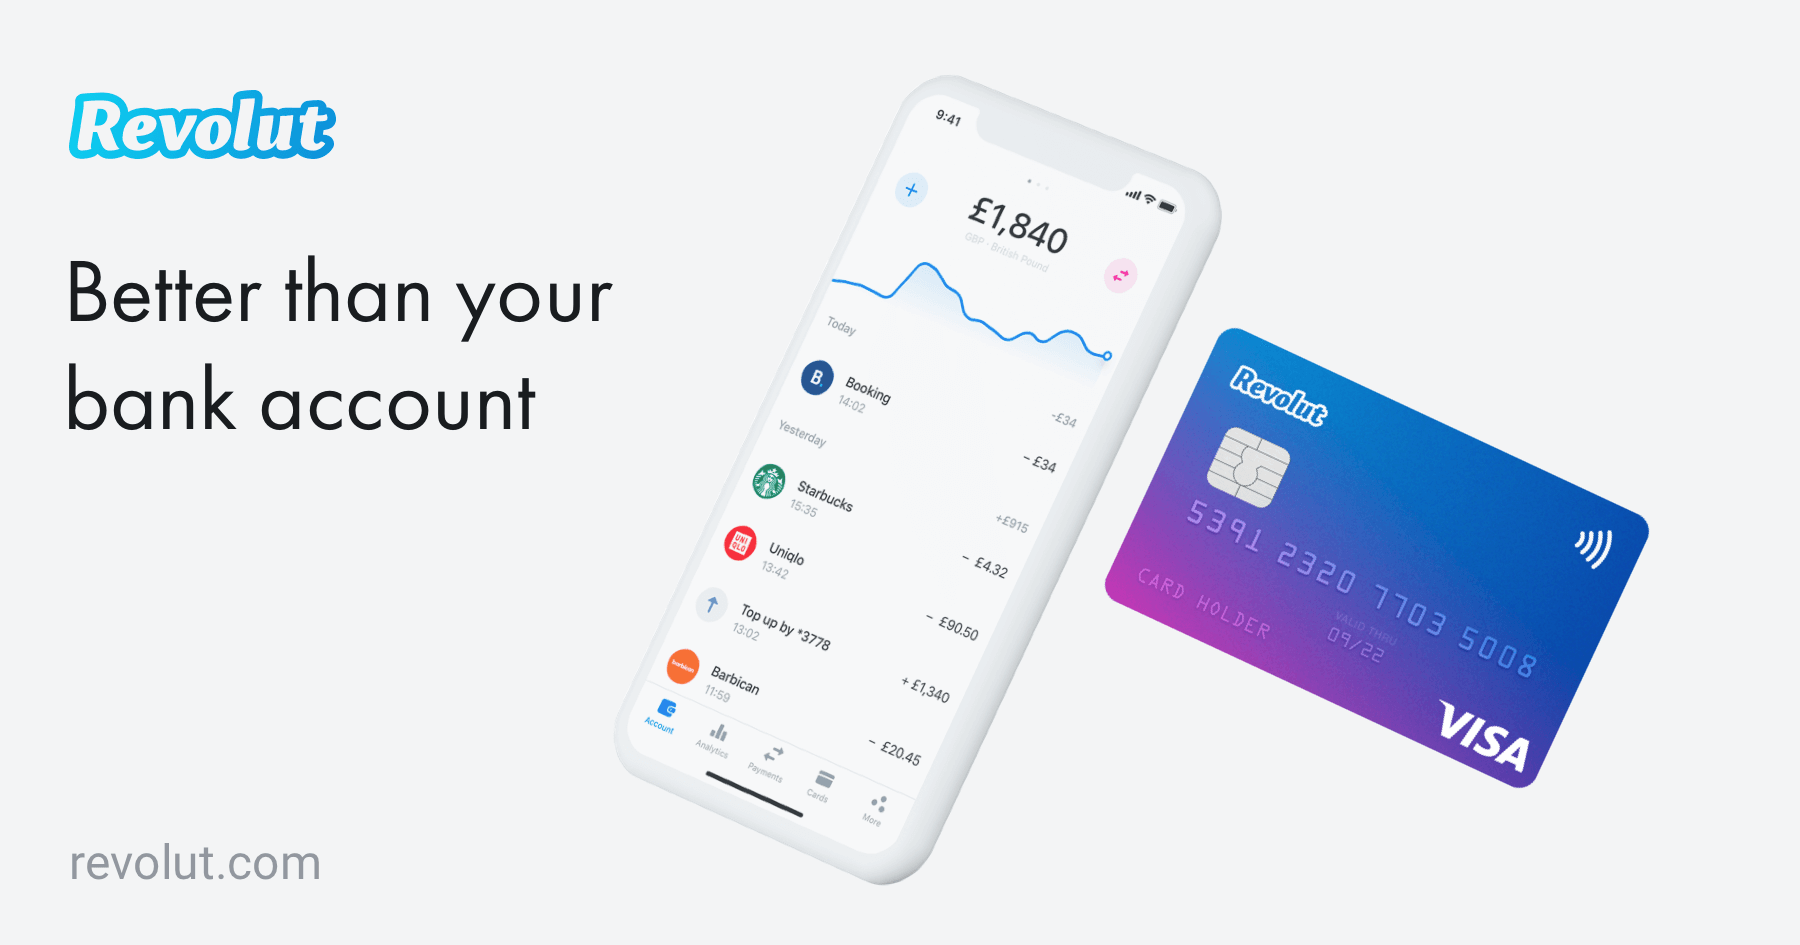 出典: https://dhbusinesssupport.com/is-revolut-the-future-of-business-banking/